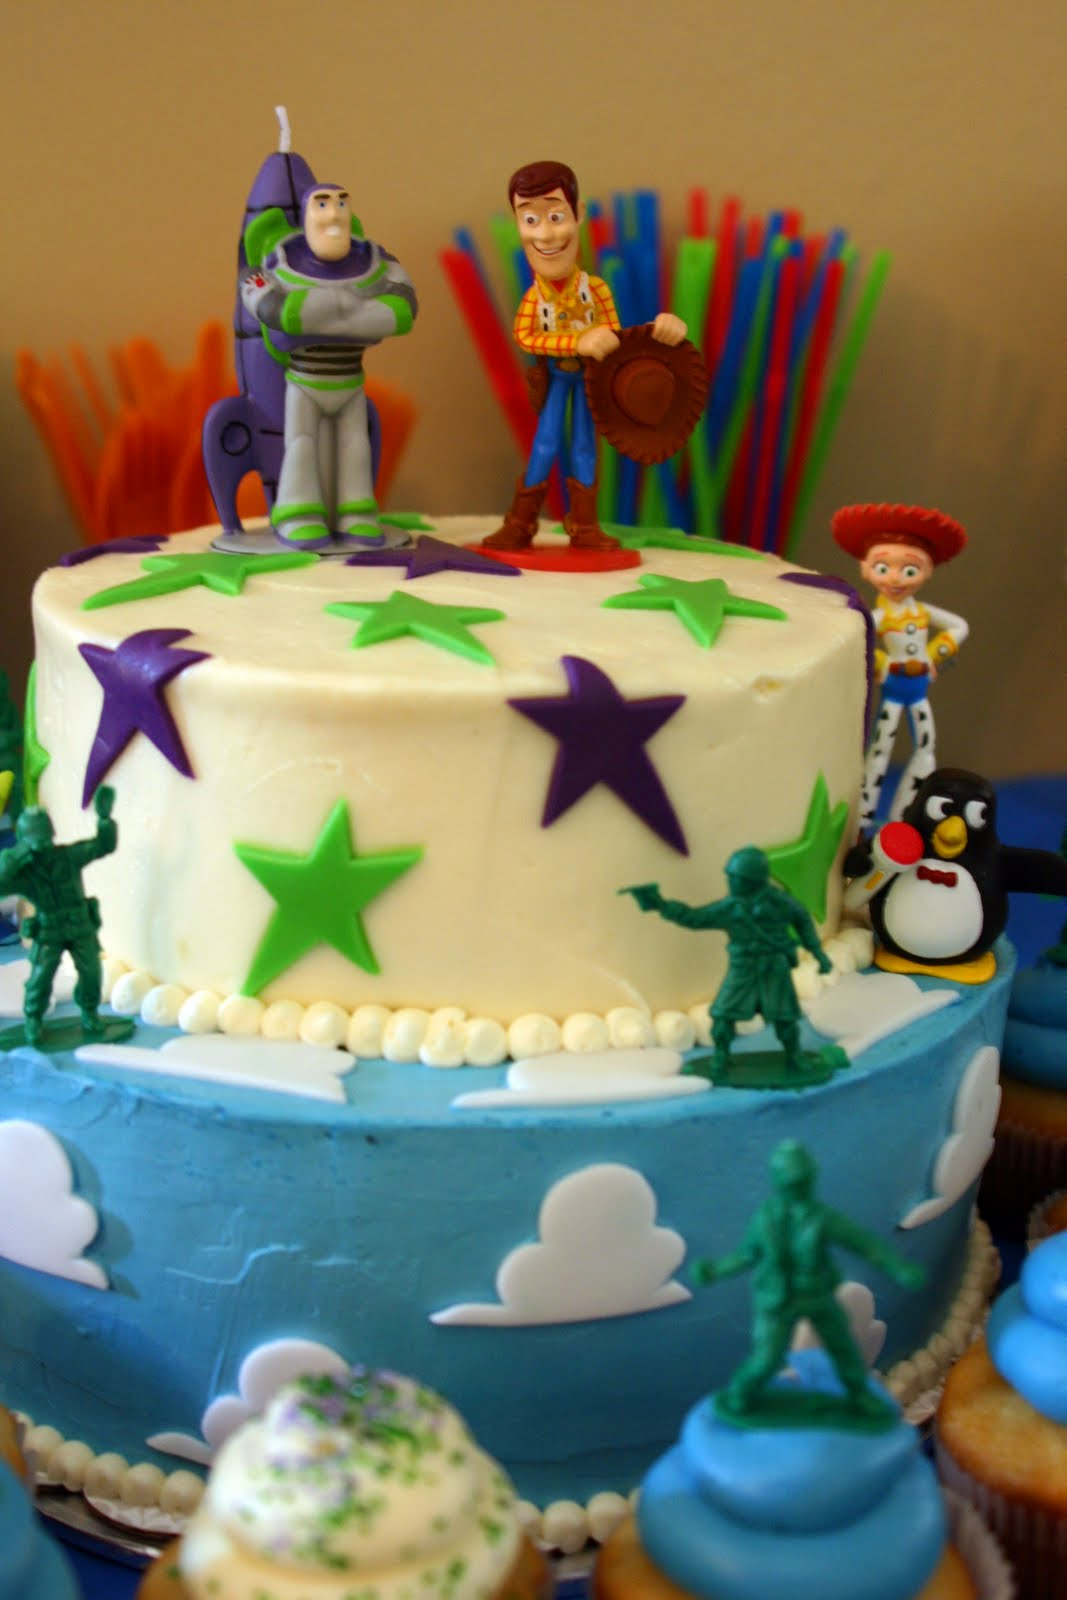 Sweet lavender bake shoppe toy story themed 5th birthday for 5th birthday decoration ideas